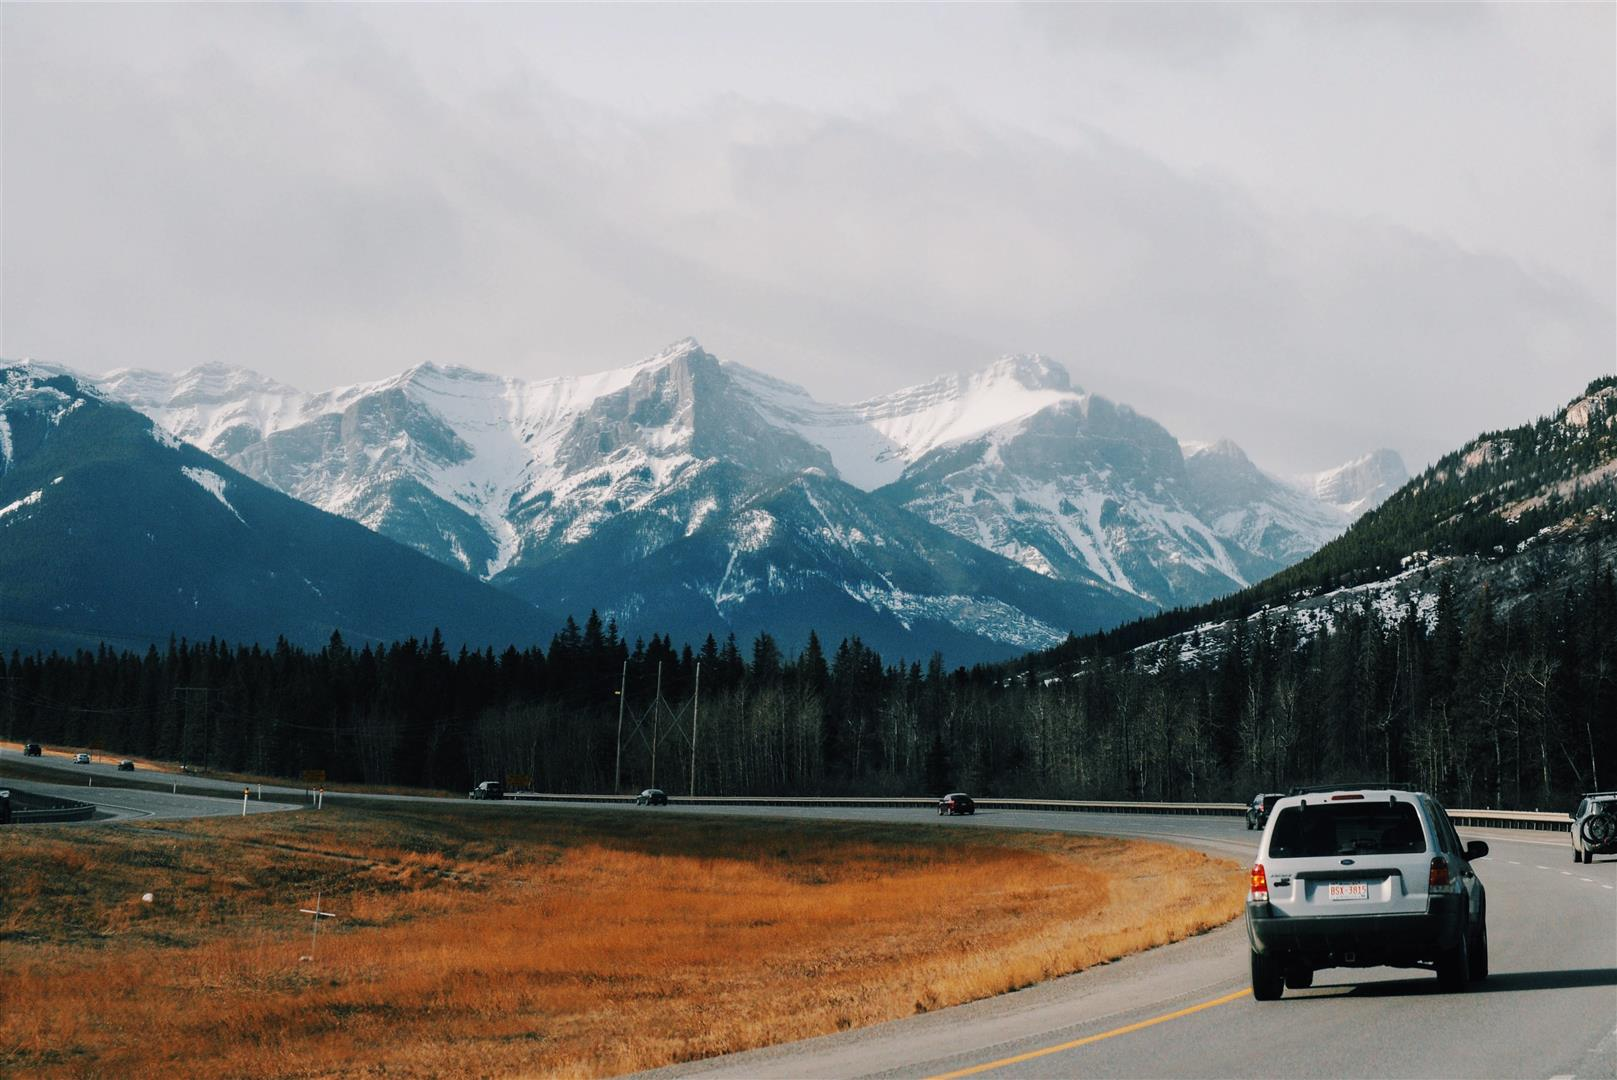 5 Ways to Prepare Your Vehicle For Mountain Road Trips